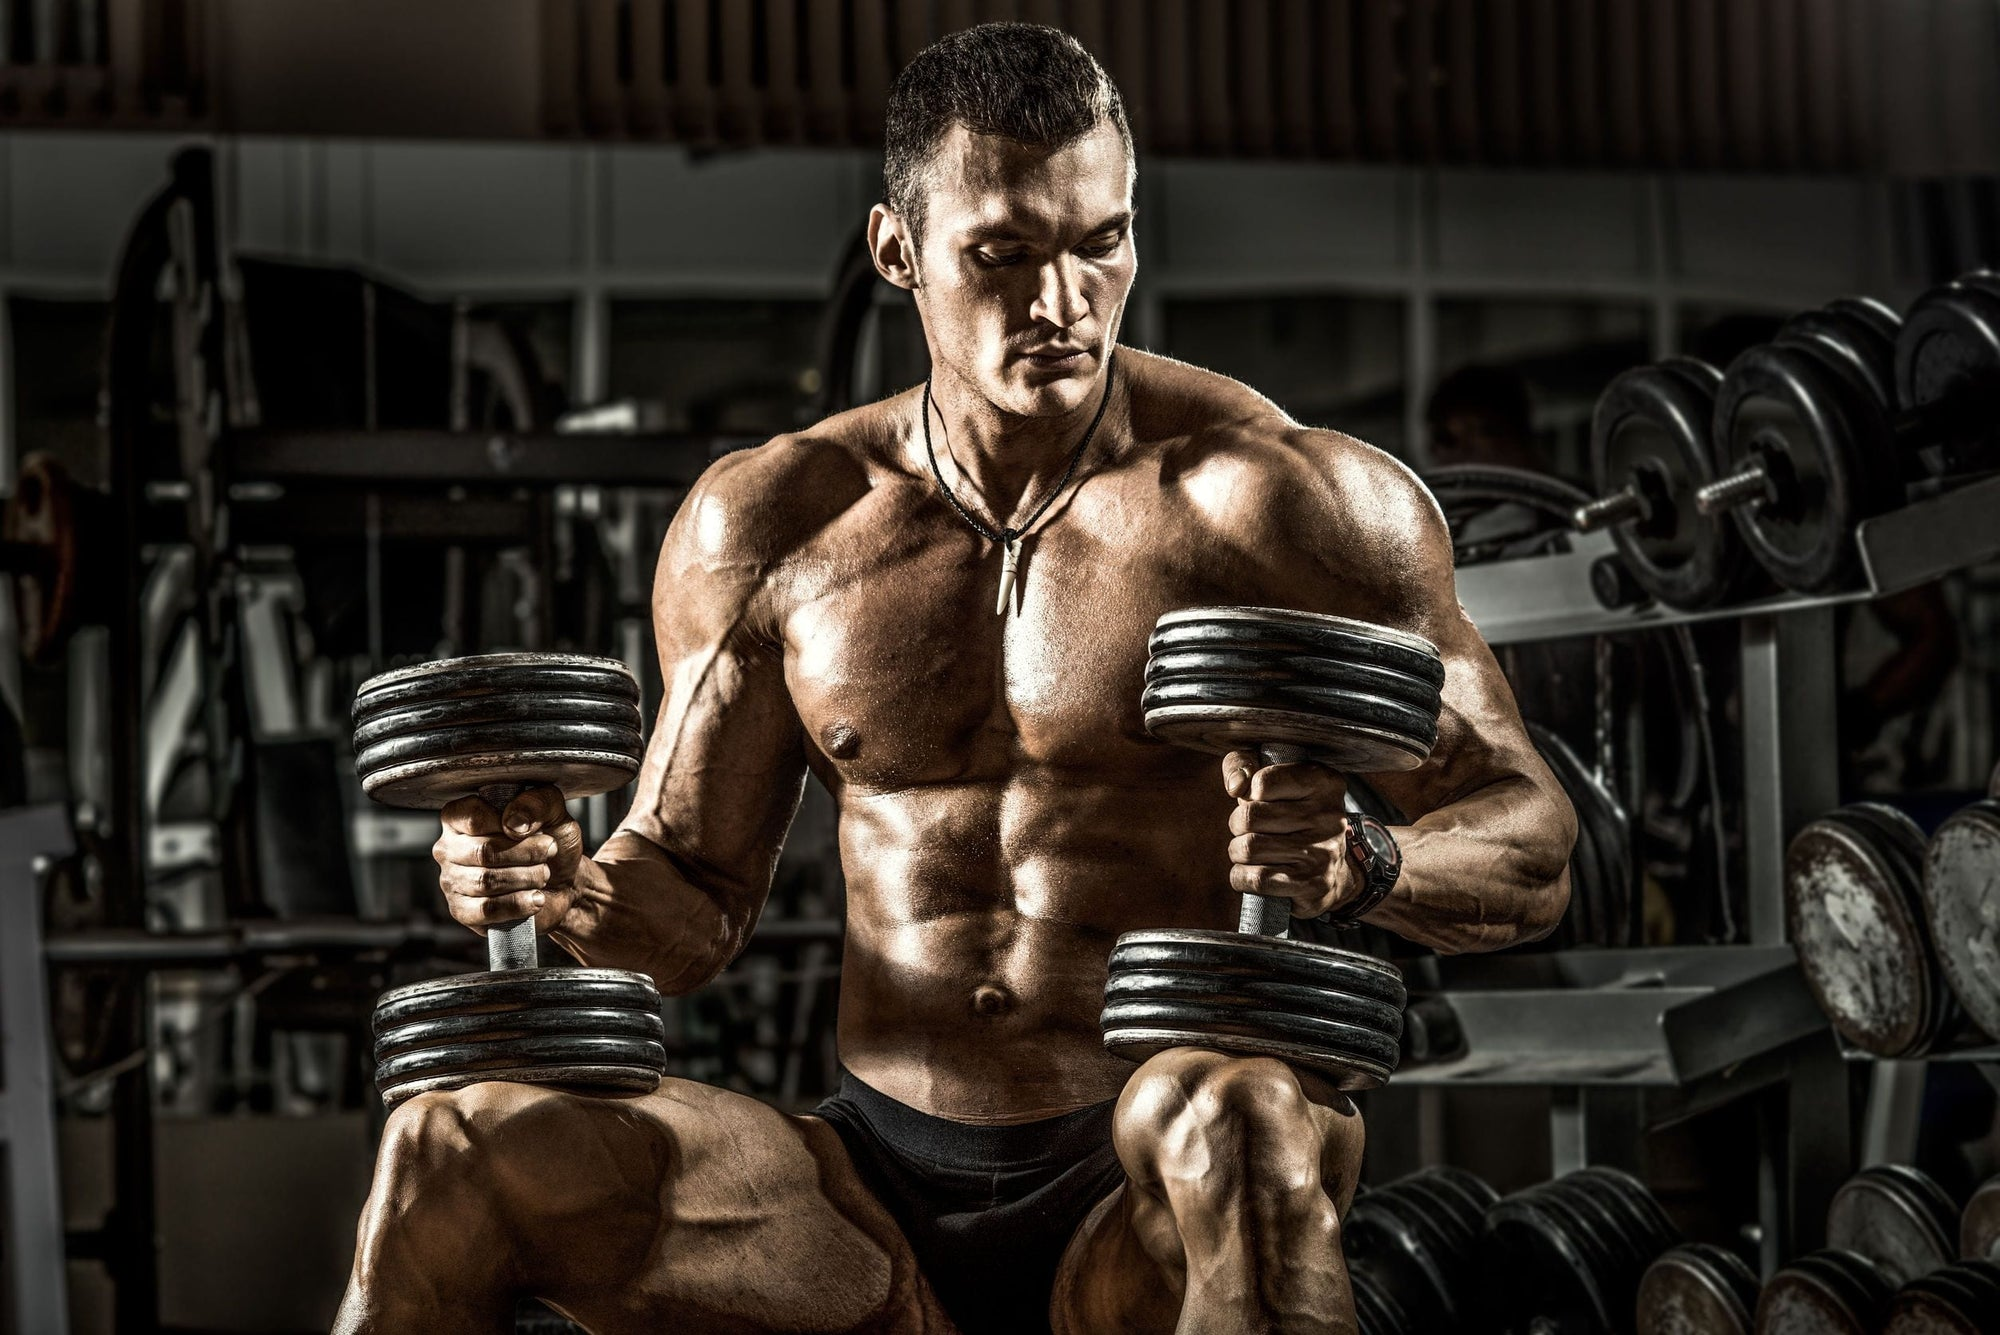 Ready to Bulk Up? - How Skinny People can Develop a Powerful Physique